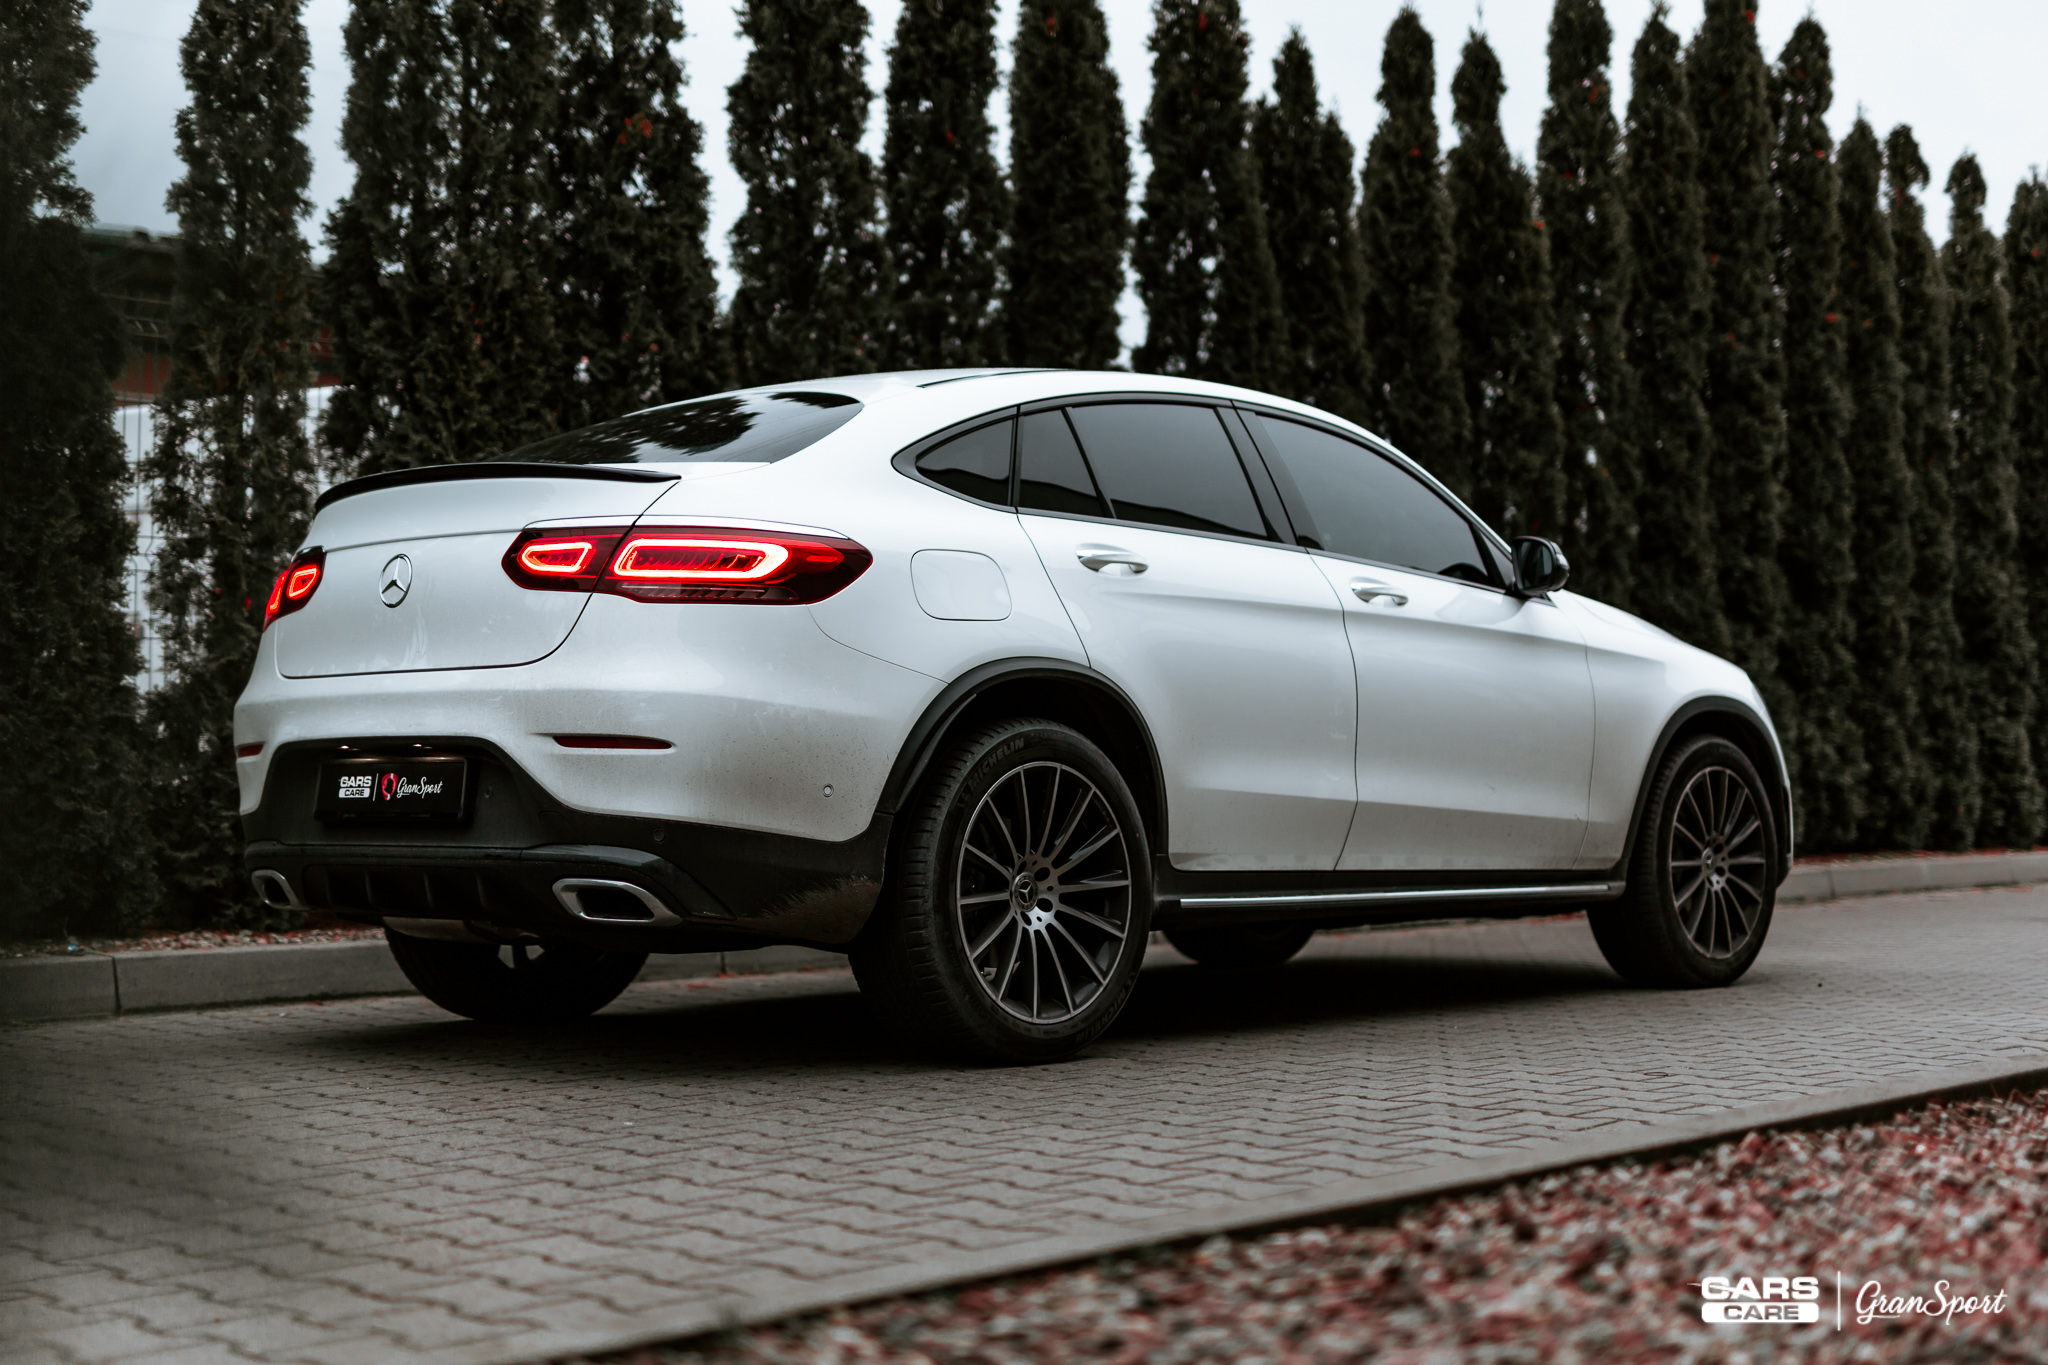 Mercedes GLC Coupe Maxhaust